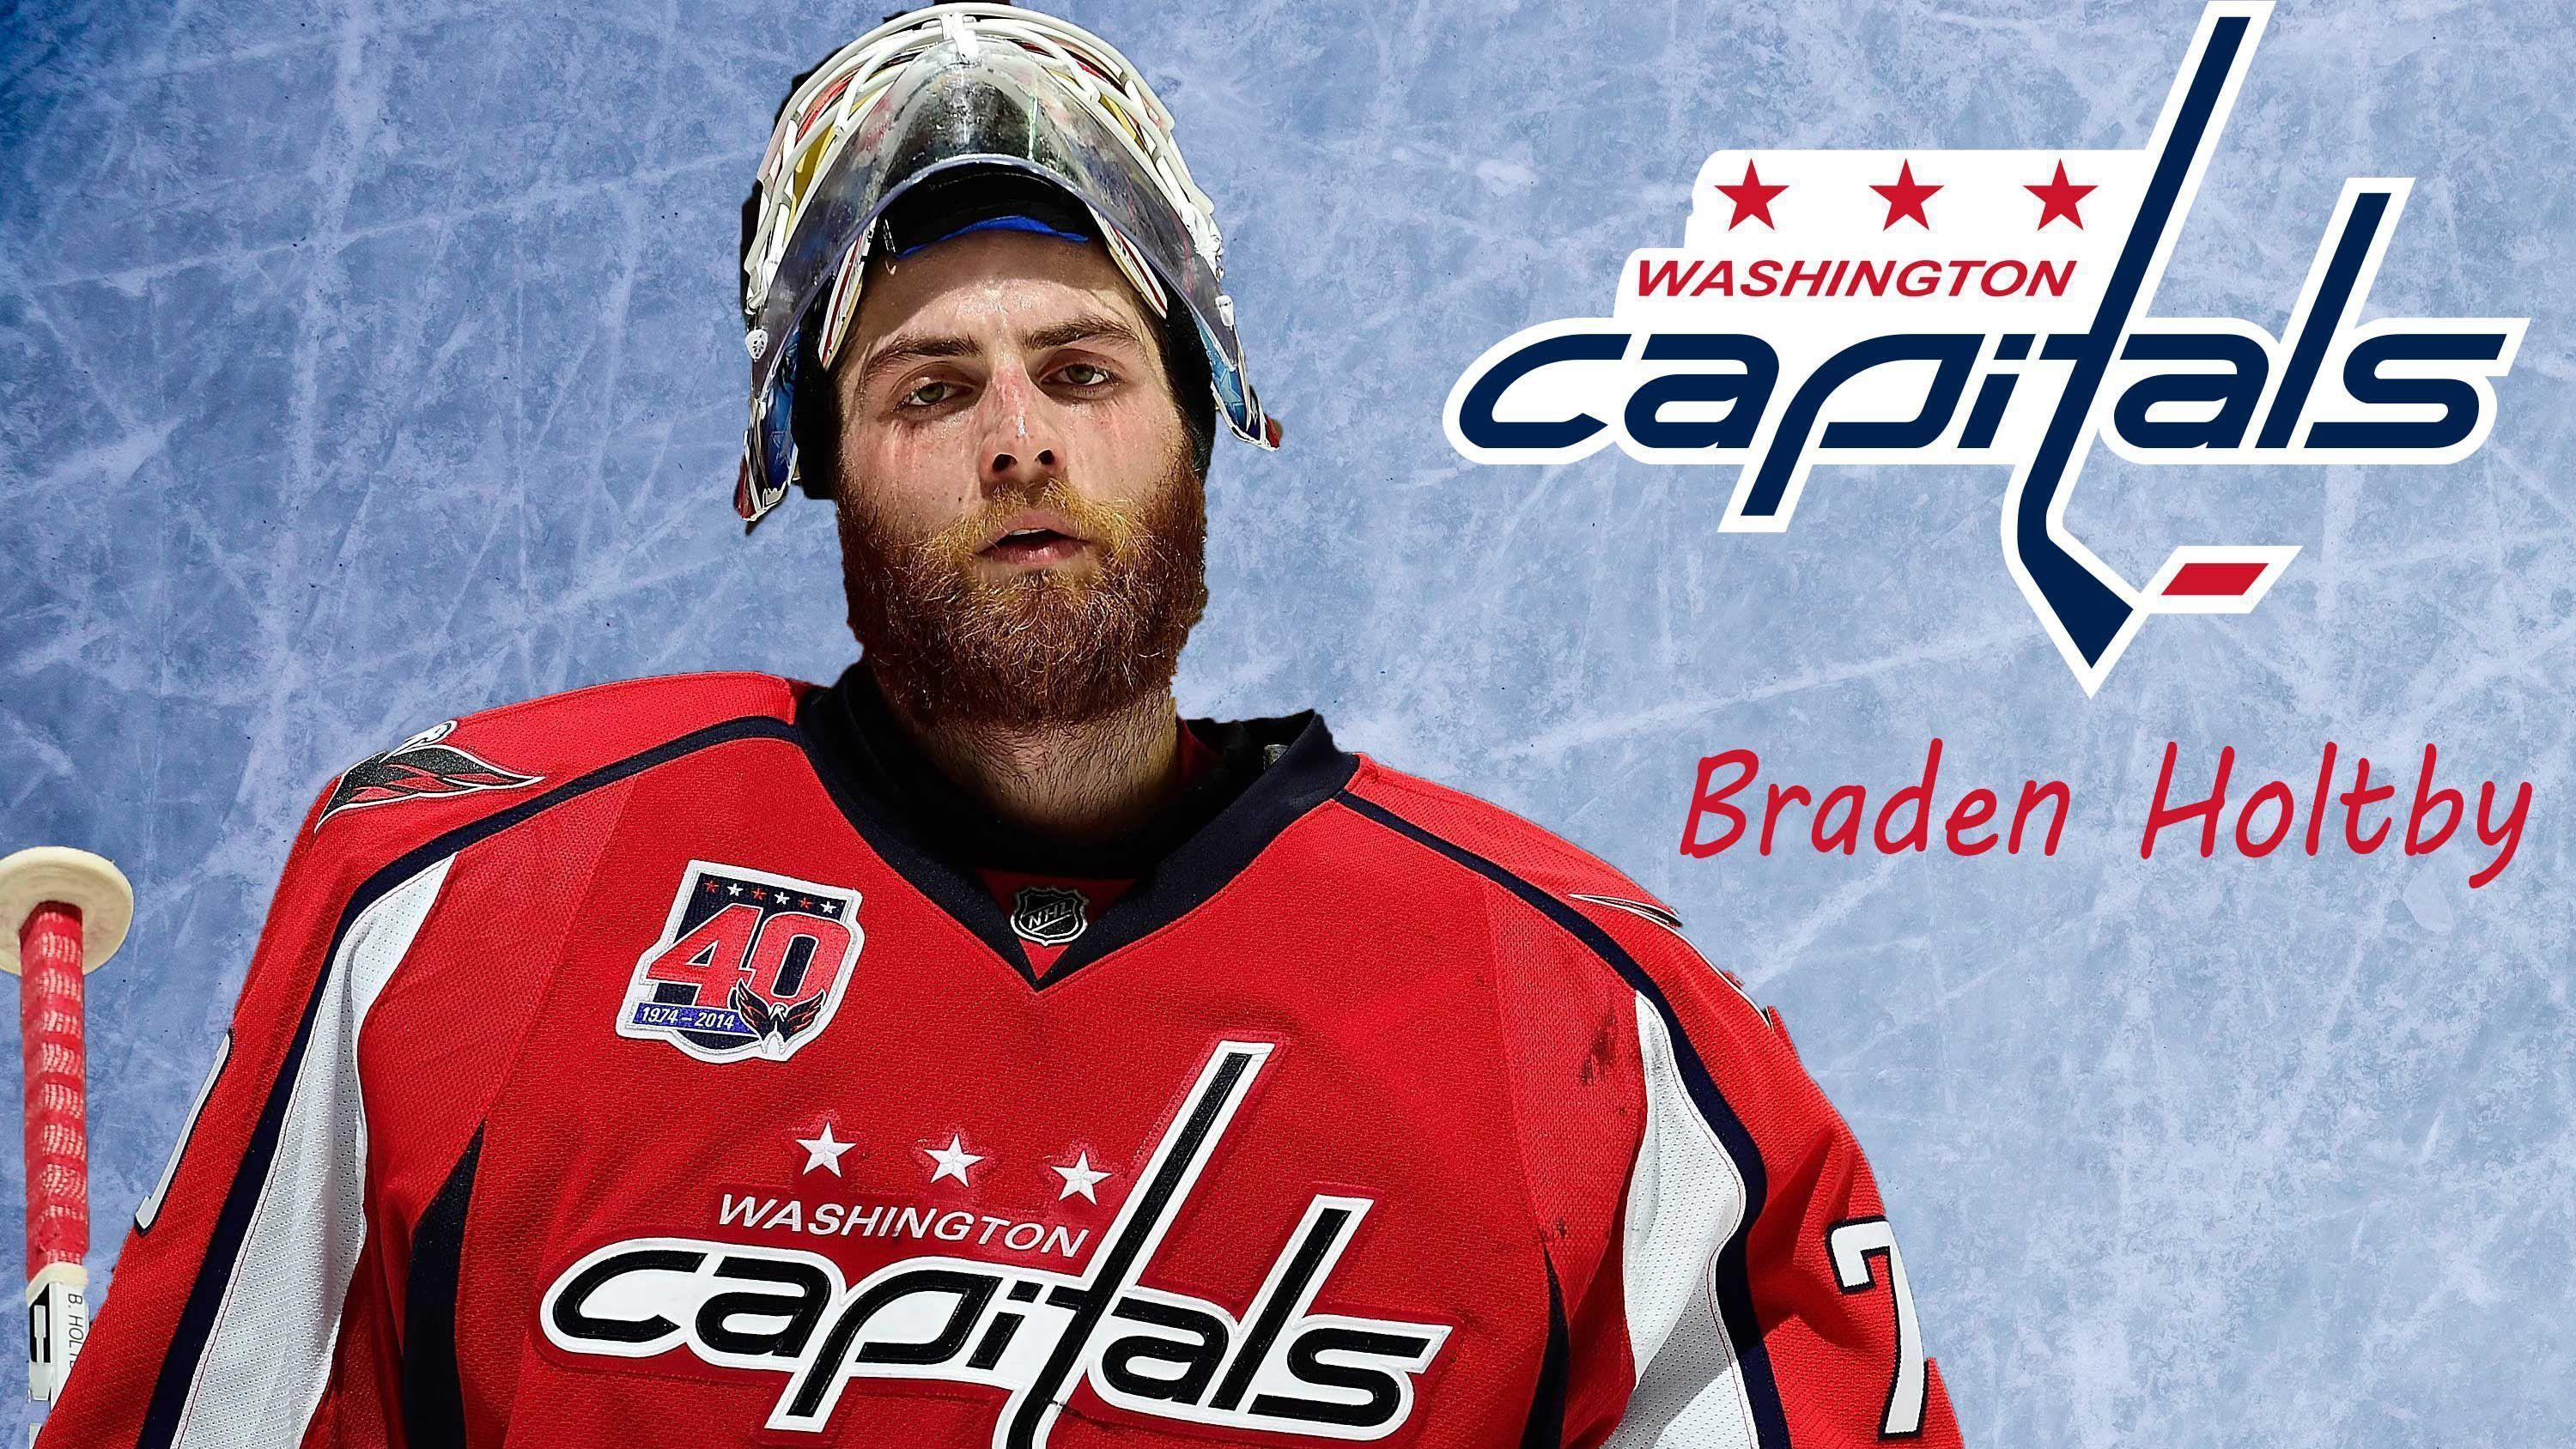 Braden Holtby Wallpapers